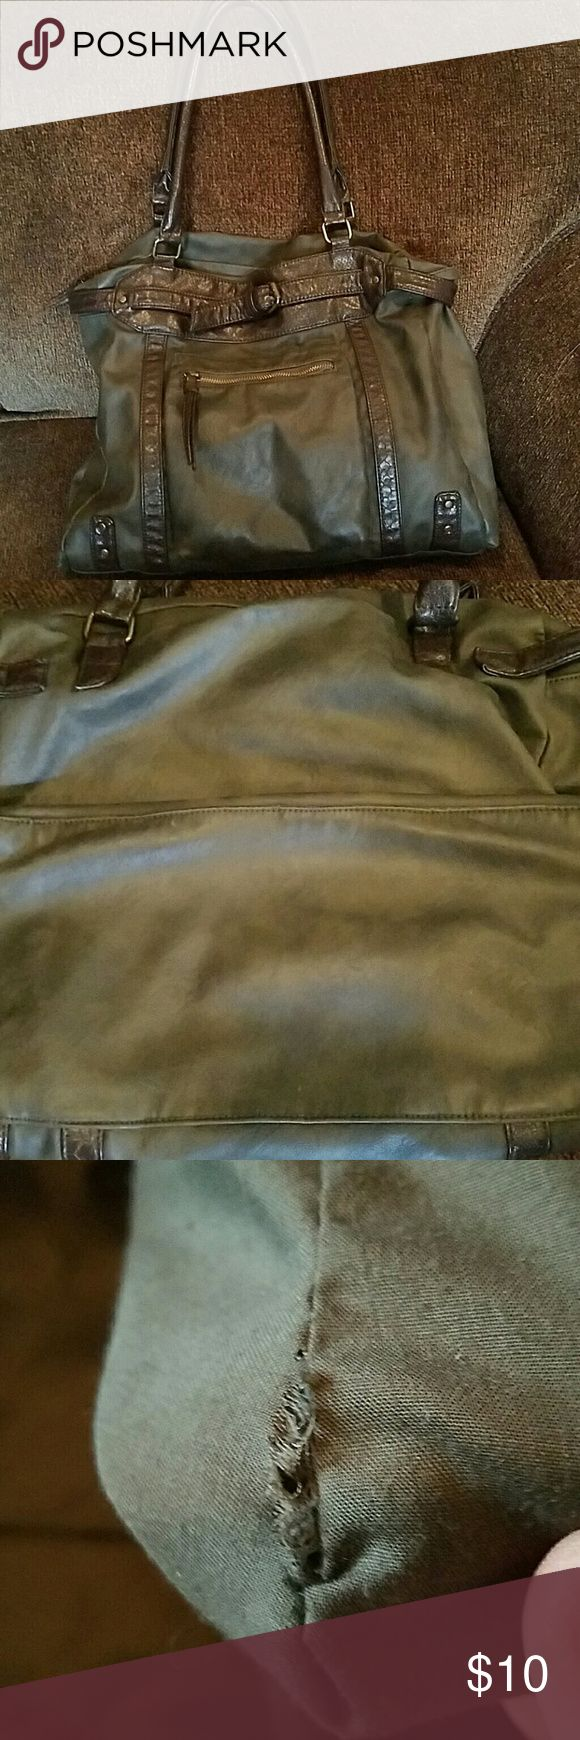 """Converse bag Army green color with dark brown trim Converse bag.  Distressed style, nice sized bag.  2nd pictures shows back side and bottom of the bag.  3rd show a very small area where the stitching came apart.  Easily fixed.  4th shows more of the bags liner.  Overall the bag is in very good shspe. Size 14"""" x 14"""" Converse Bags"""